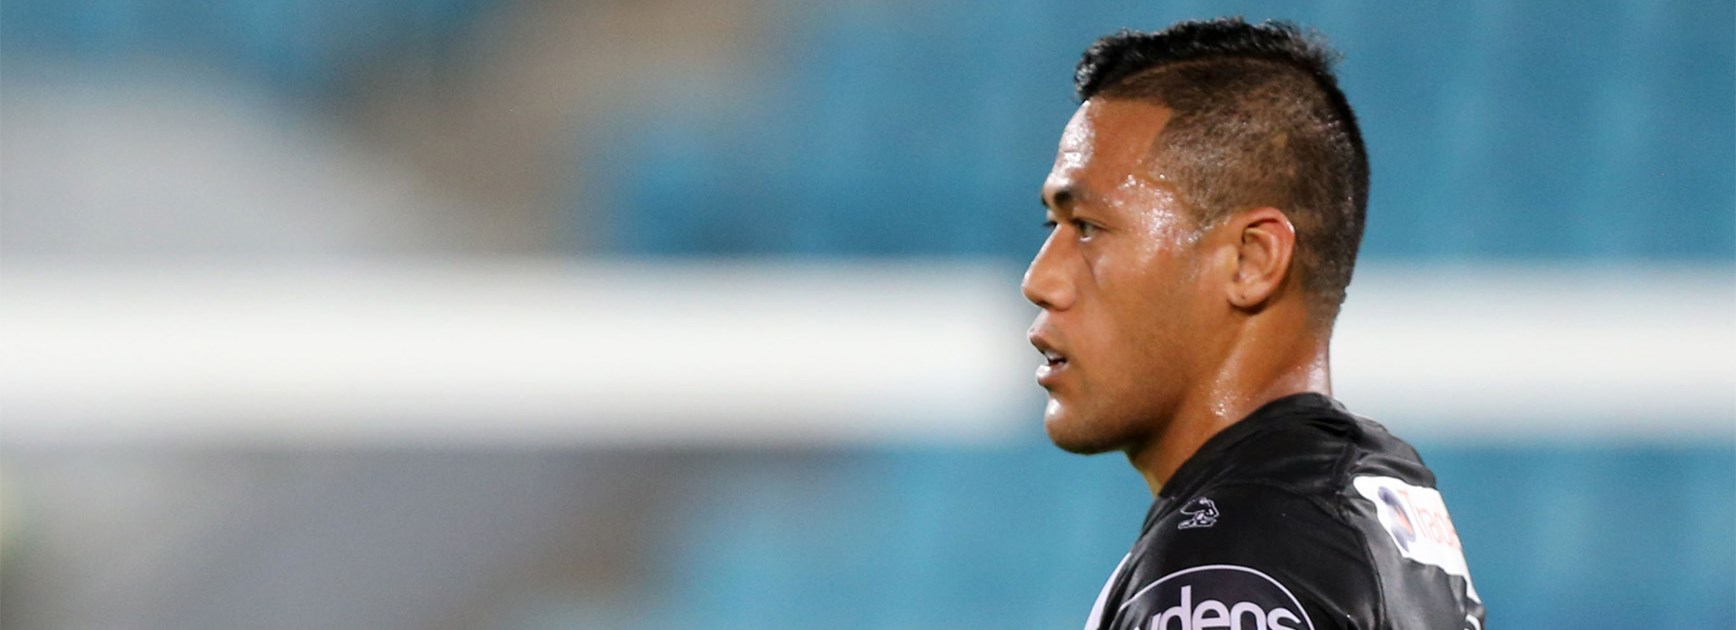 Tim Simona has been suspended for three matches at the NRL judiciary.